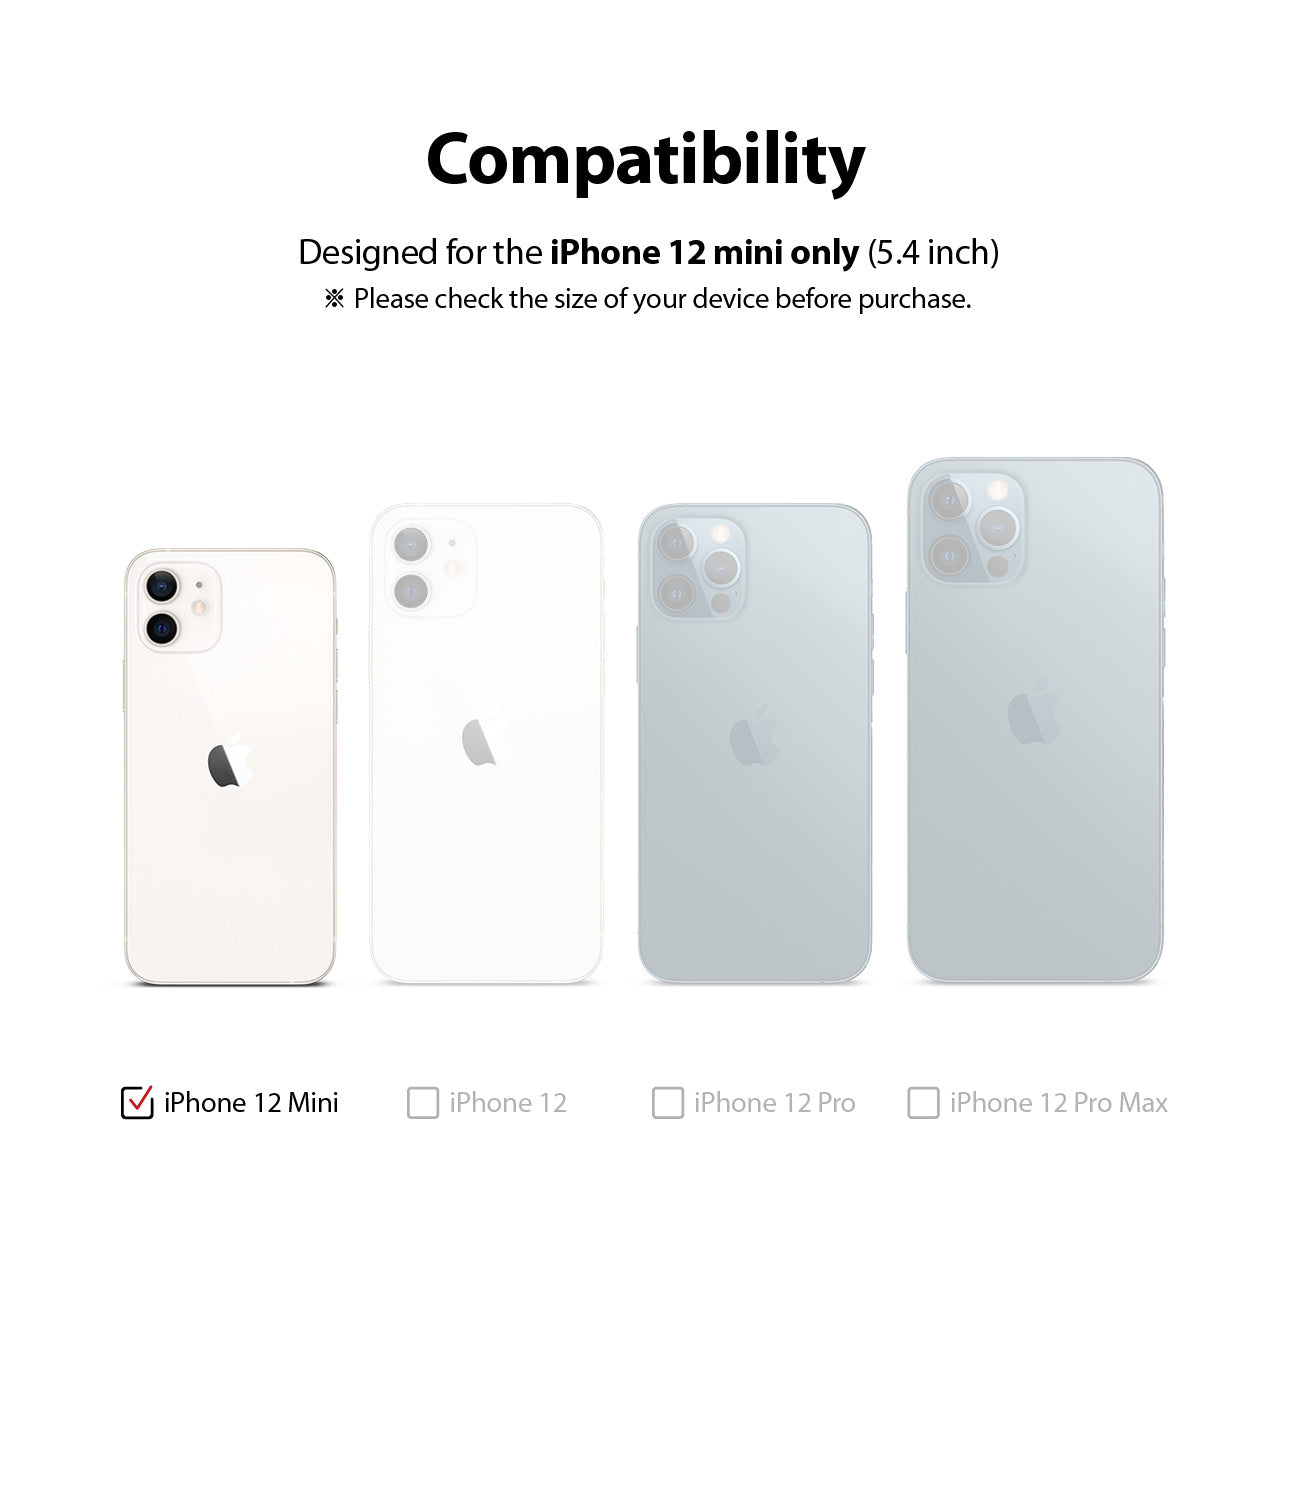 only compatible with iphone 12 mini